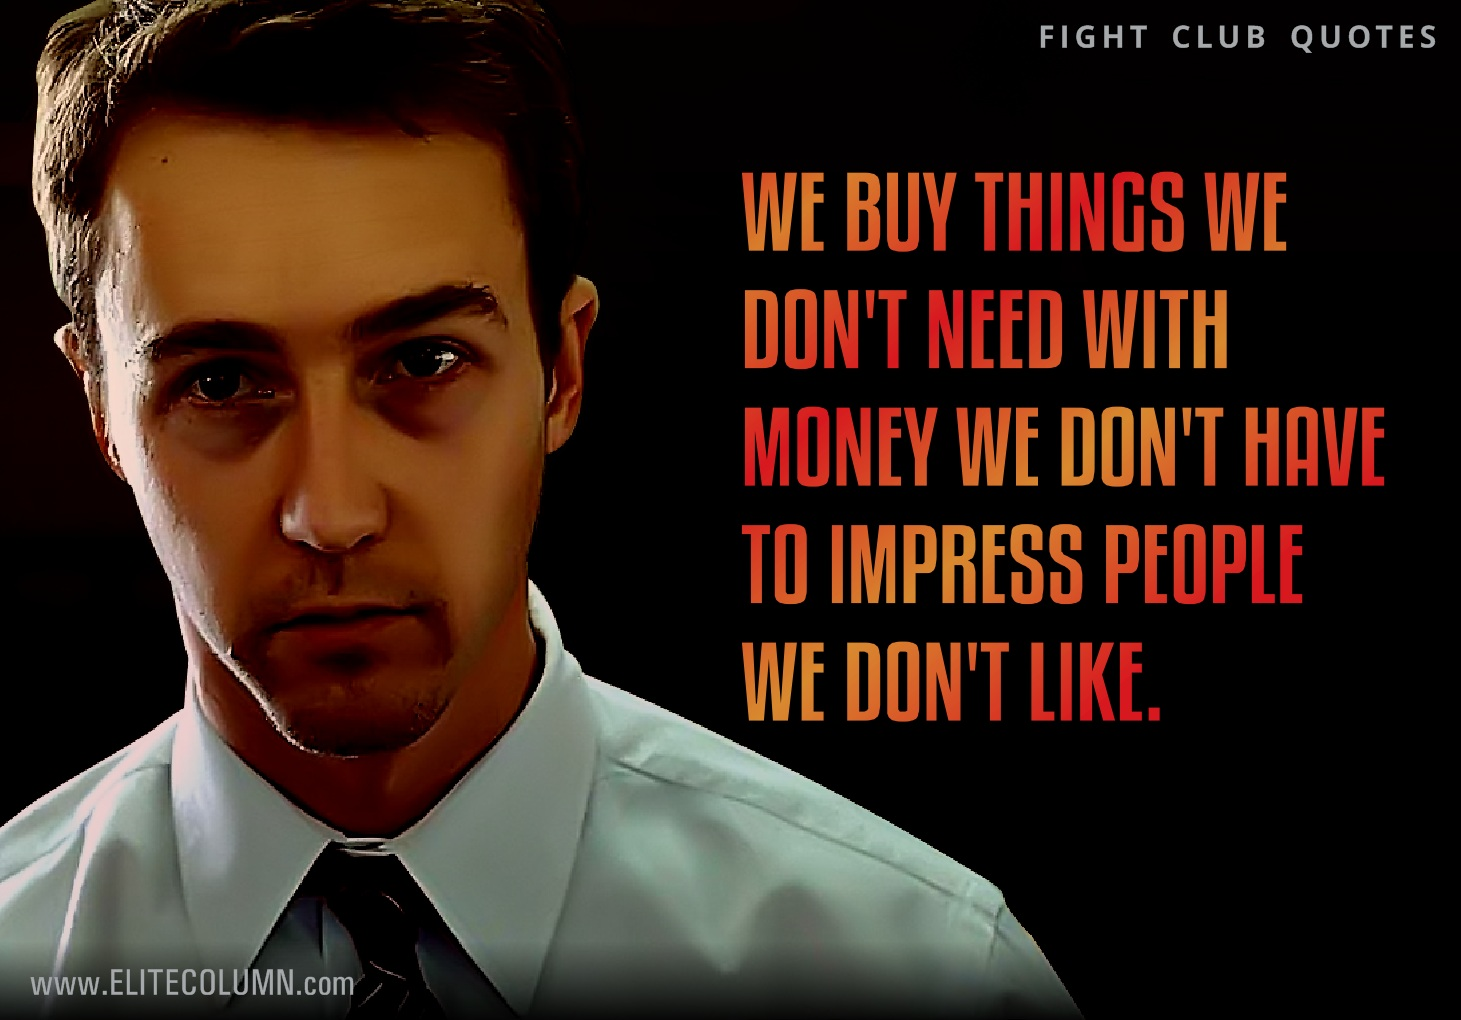 Fight club quotes